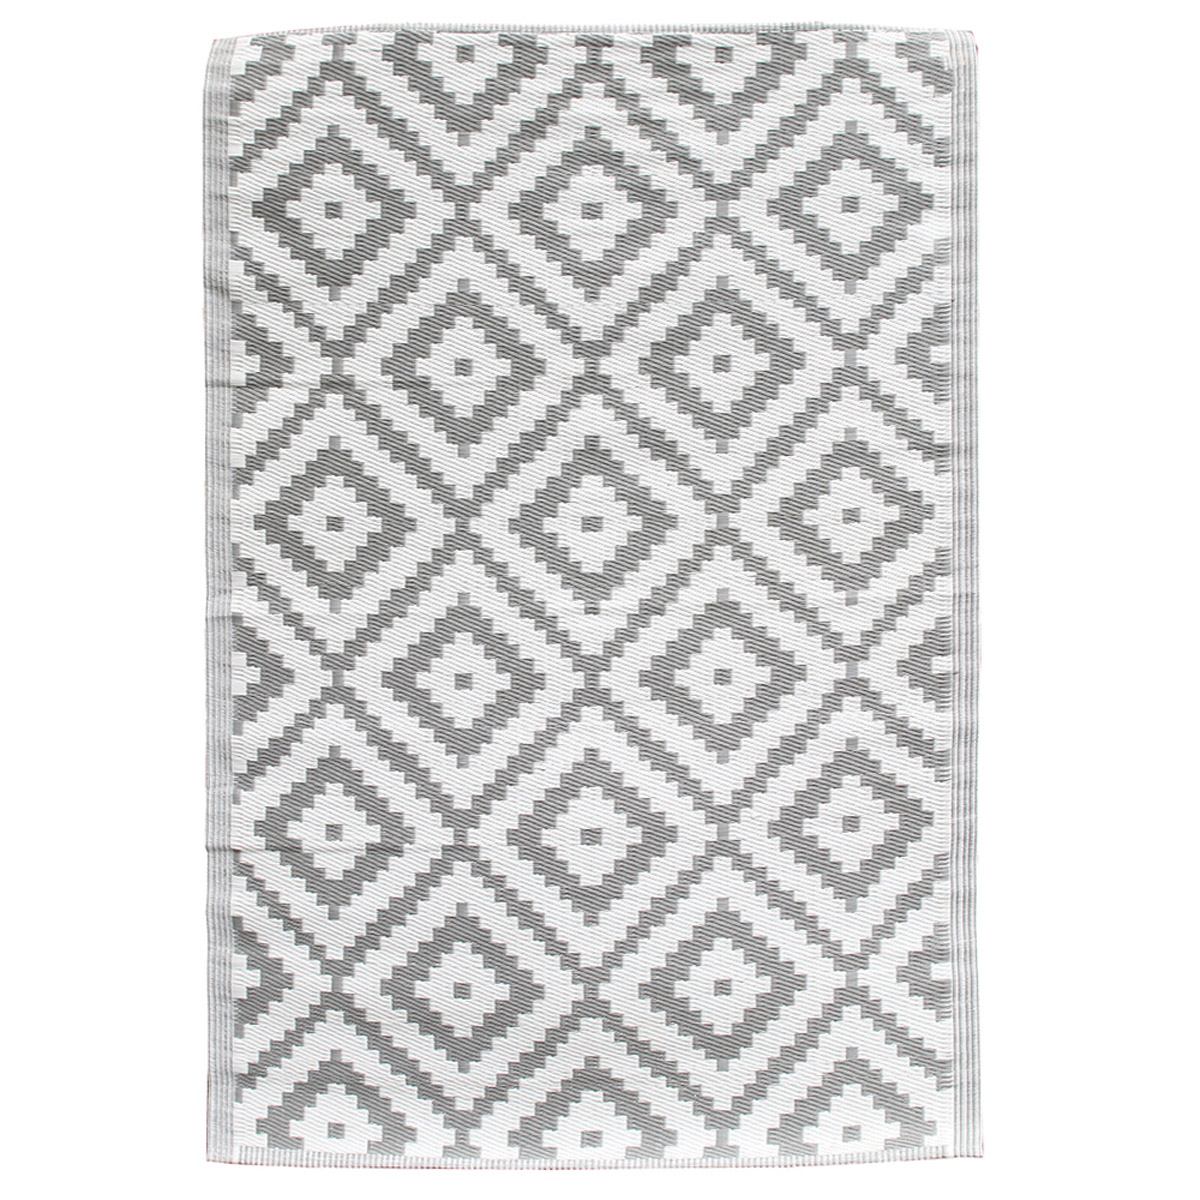 Tapis indoor outdoor \'Boho\' gris clair - 180x120 cm - [R2506]